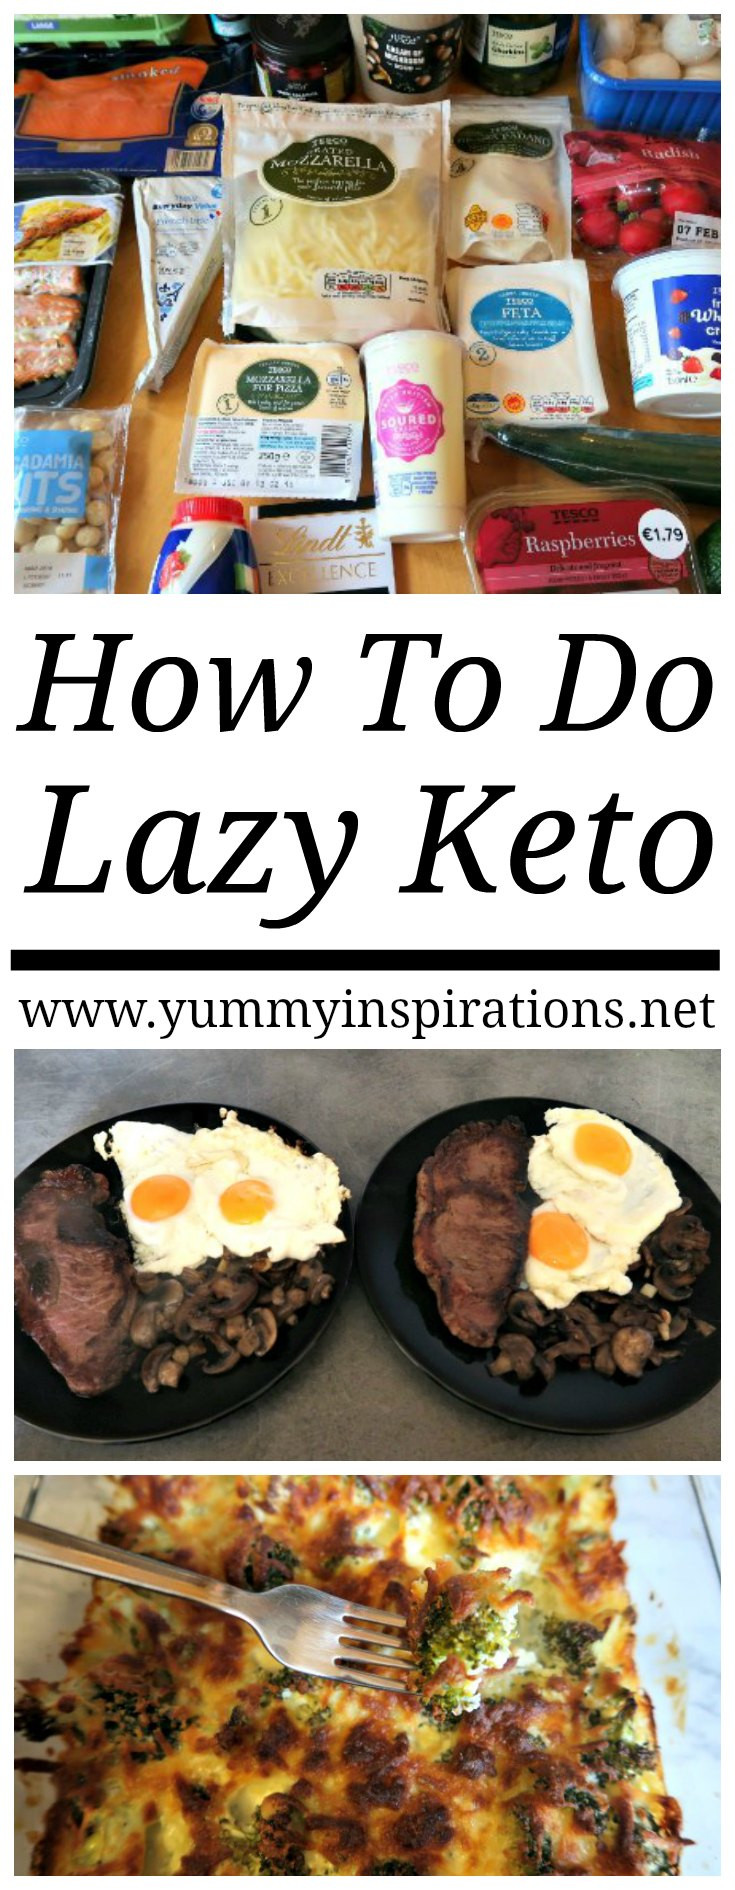 Lazy Keto Diet For Beginners  How To Do Lazy Keto What is Lazy Keto Cooking Lazy Keto